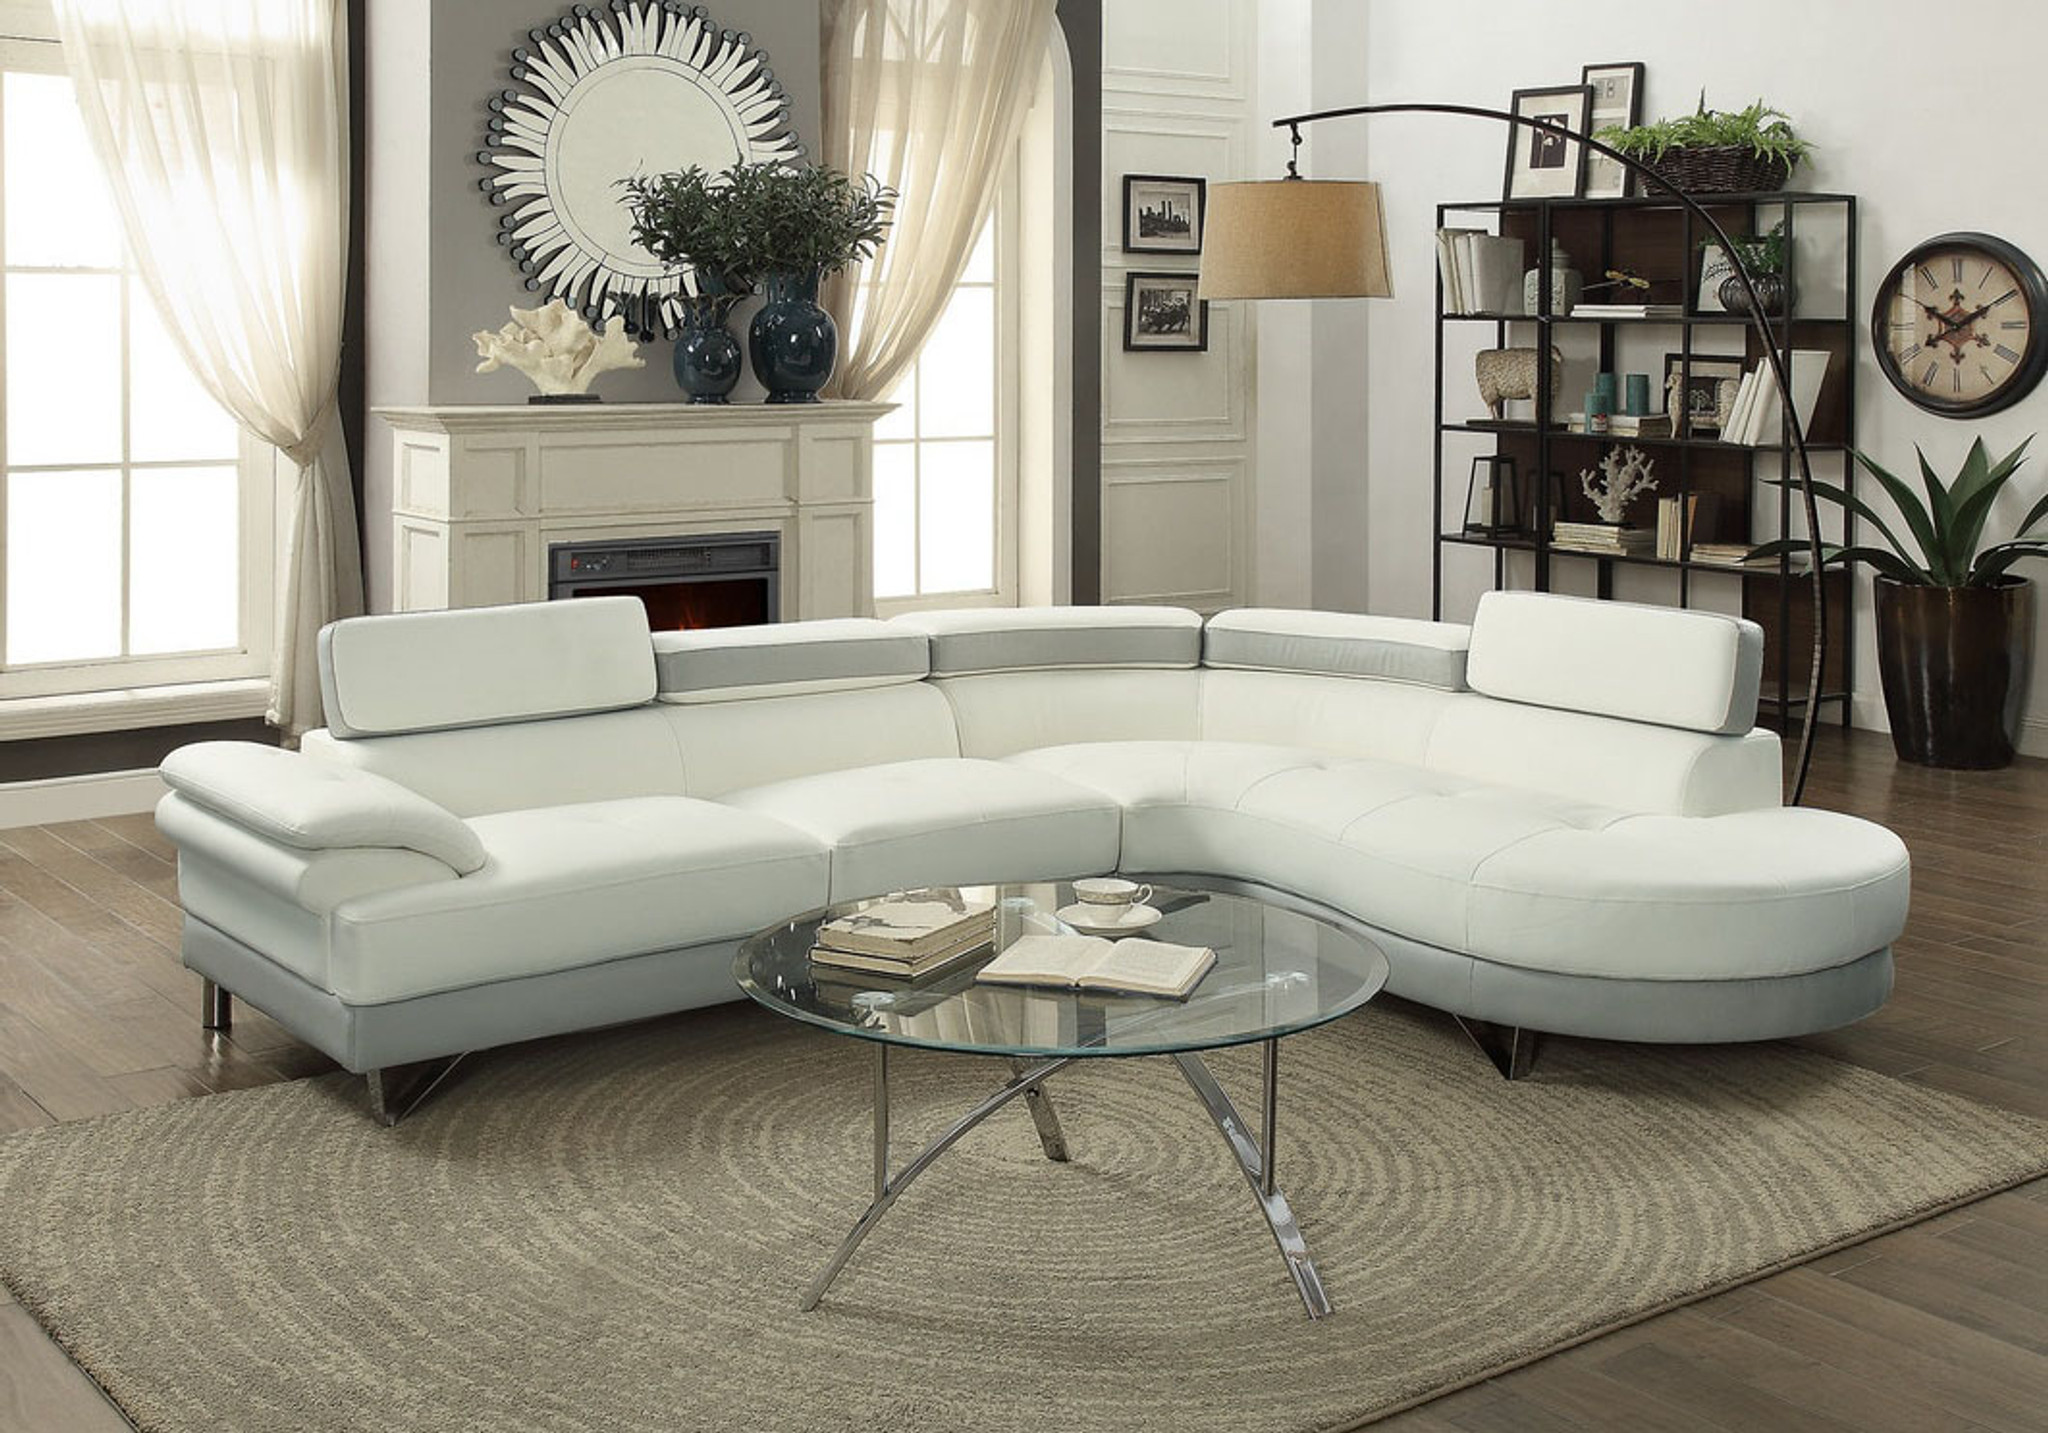 2pc sectional with flip up headrest in white light gray